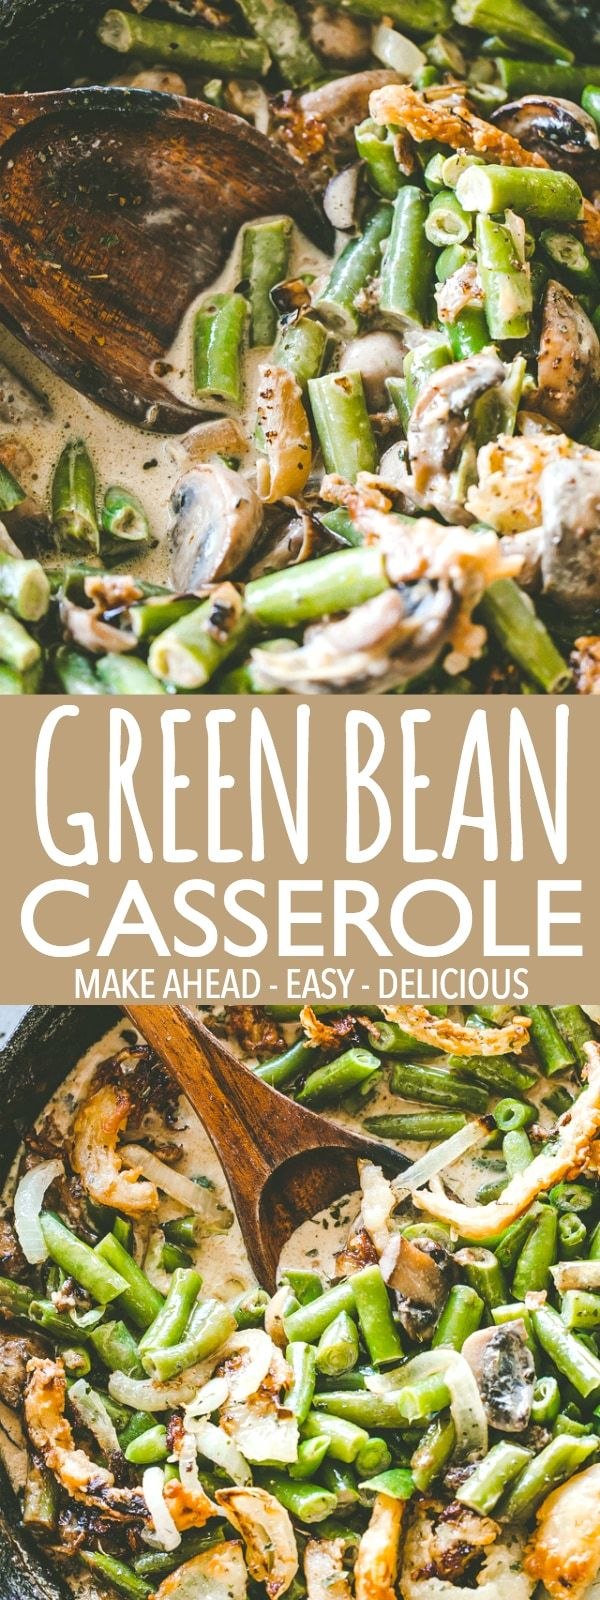 The Best Green Bean Casserole Recipe | Easy Thanksgiving Sides